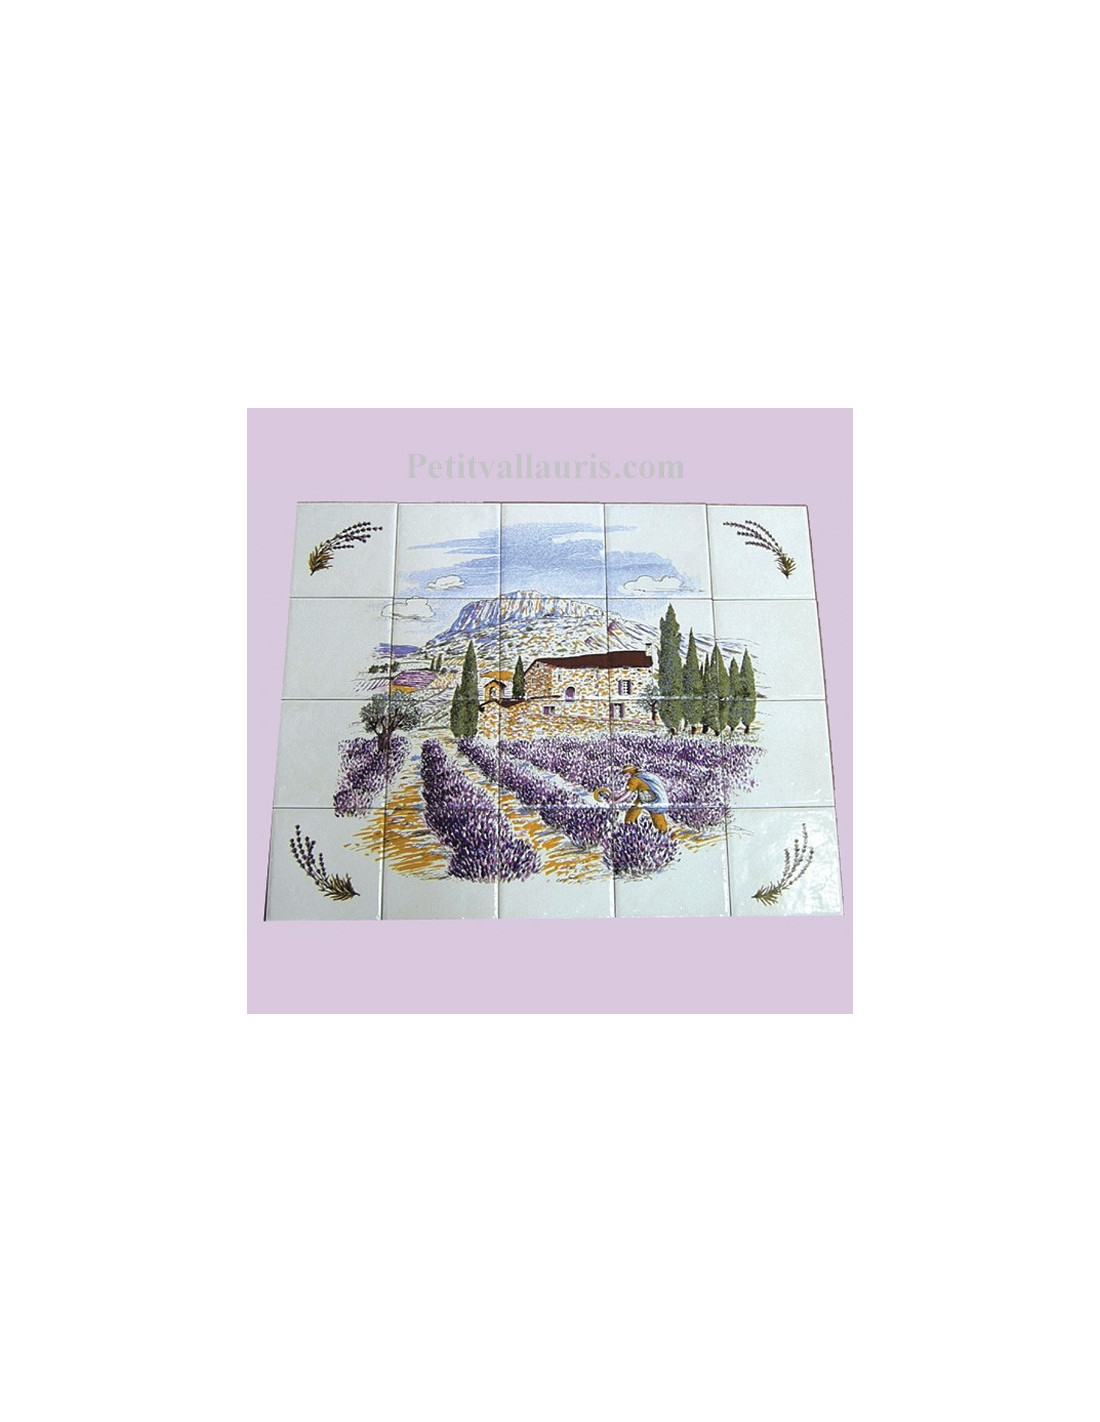 Fresque murale en fa ence d cor provence et brins de for Faience decorative murale